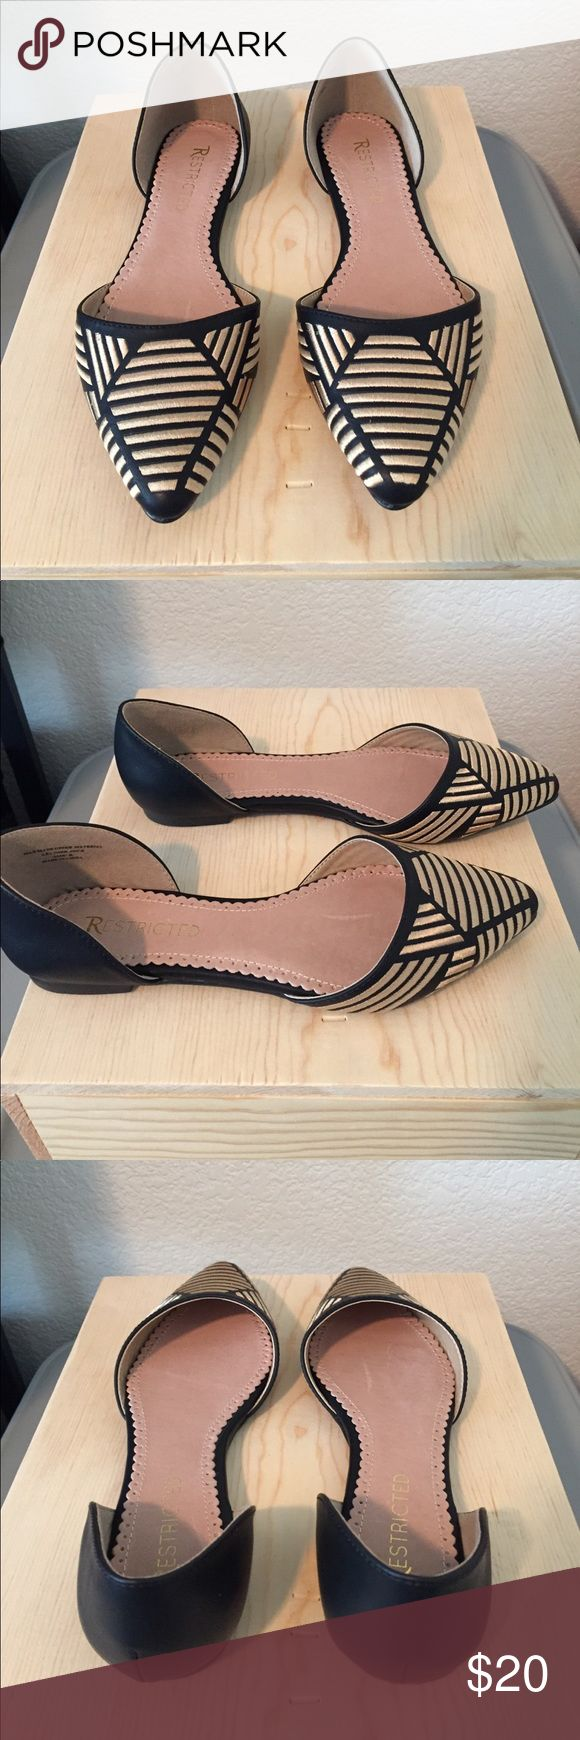 Black and Gold Pointed Toe Flats Black pointed toe flats with gold angled embroidery by Restricted. Size 6, but runs large. Worn once. Restricted Shoes Flats & Loafers